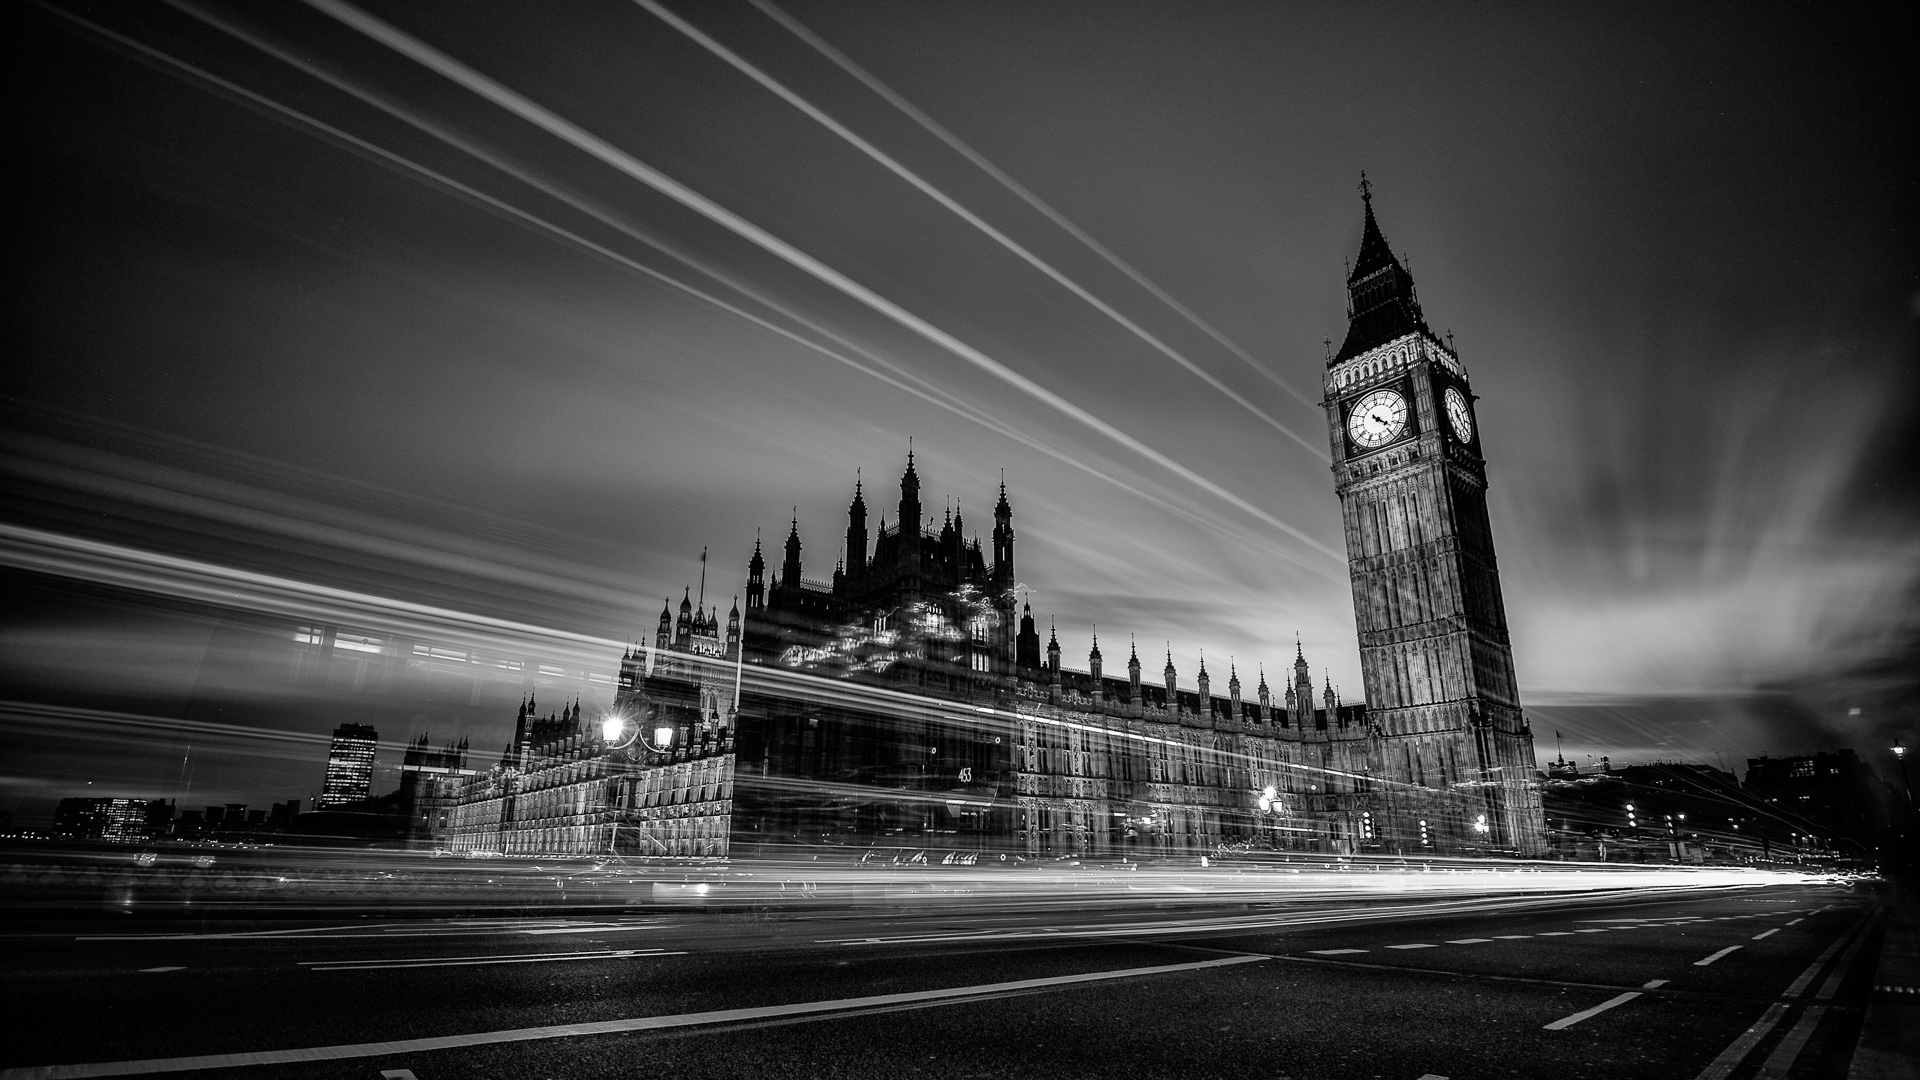 London black and white wallpapers 37 wallpapers for Black and white london mural wallpaper